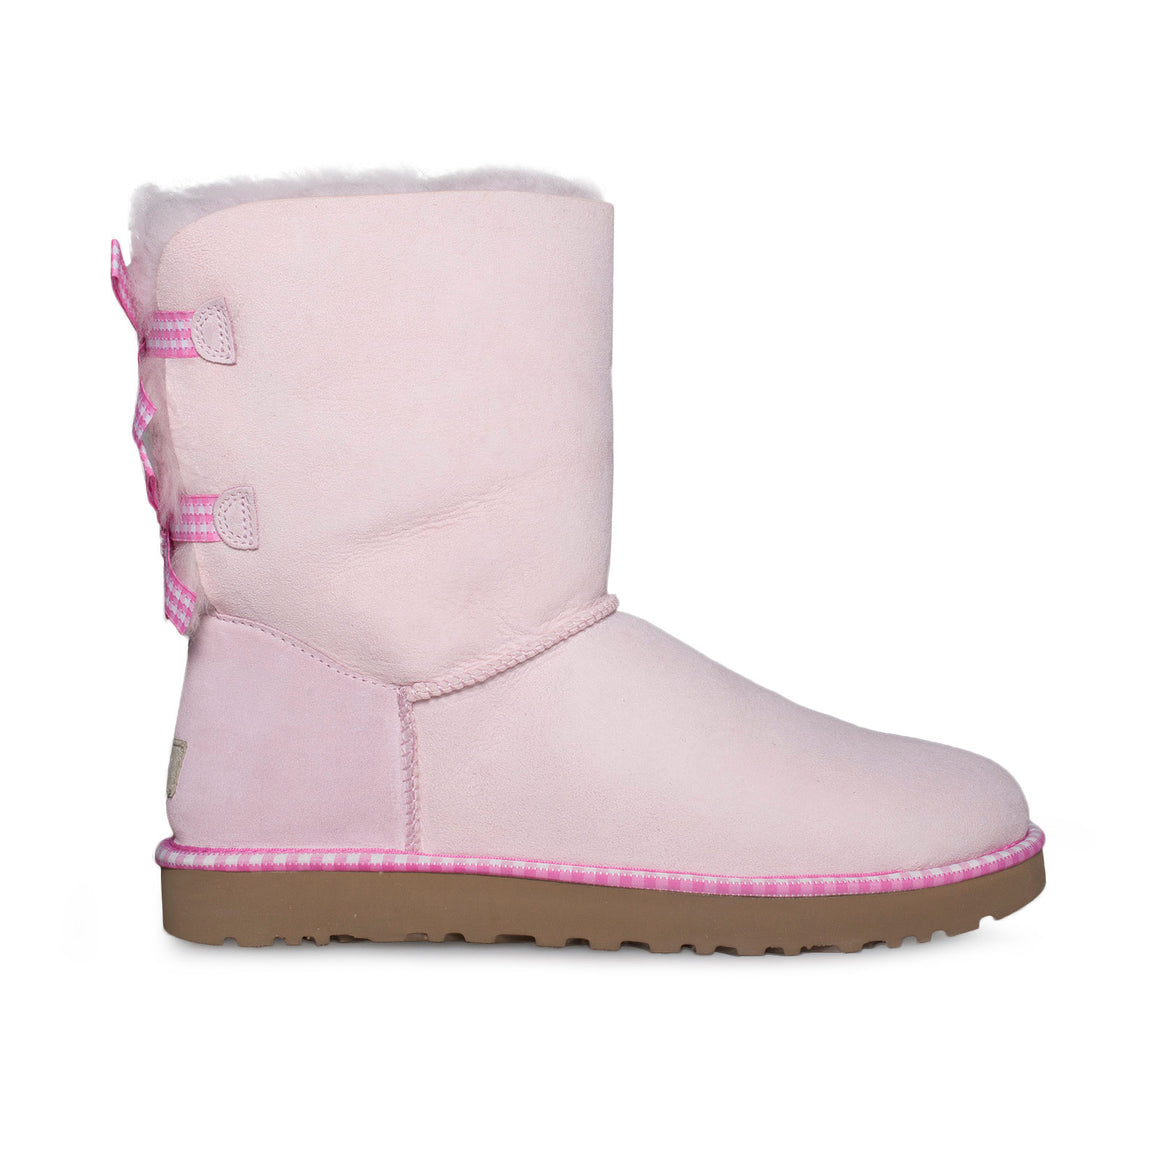 UGG Bailey Bow Gingham Seashell Pink Boots - Women's